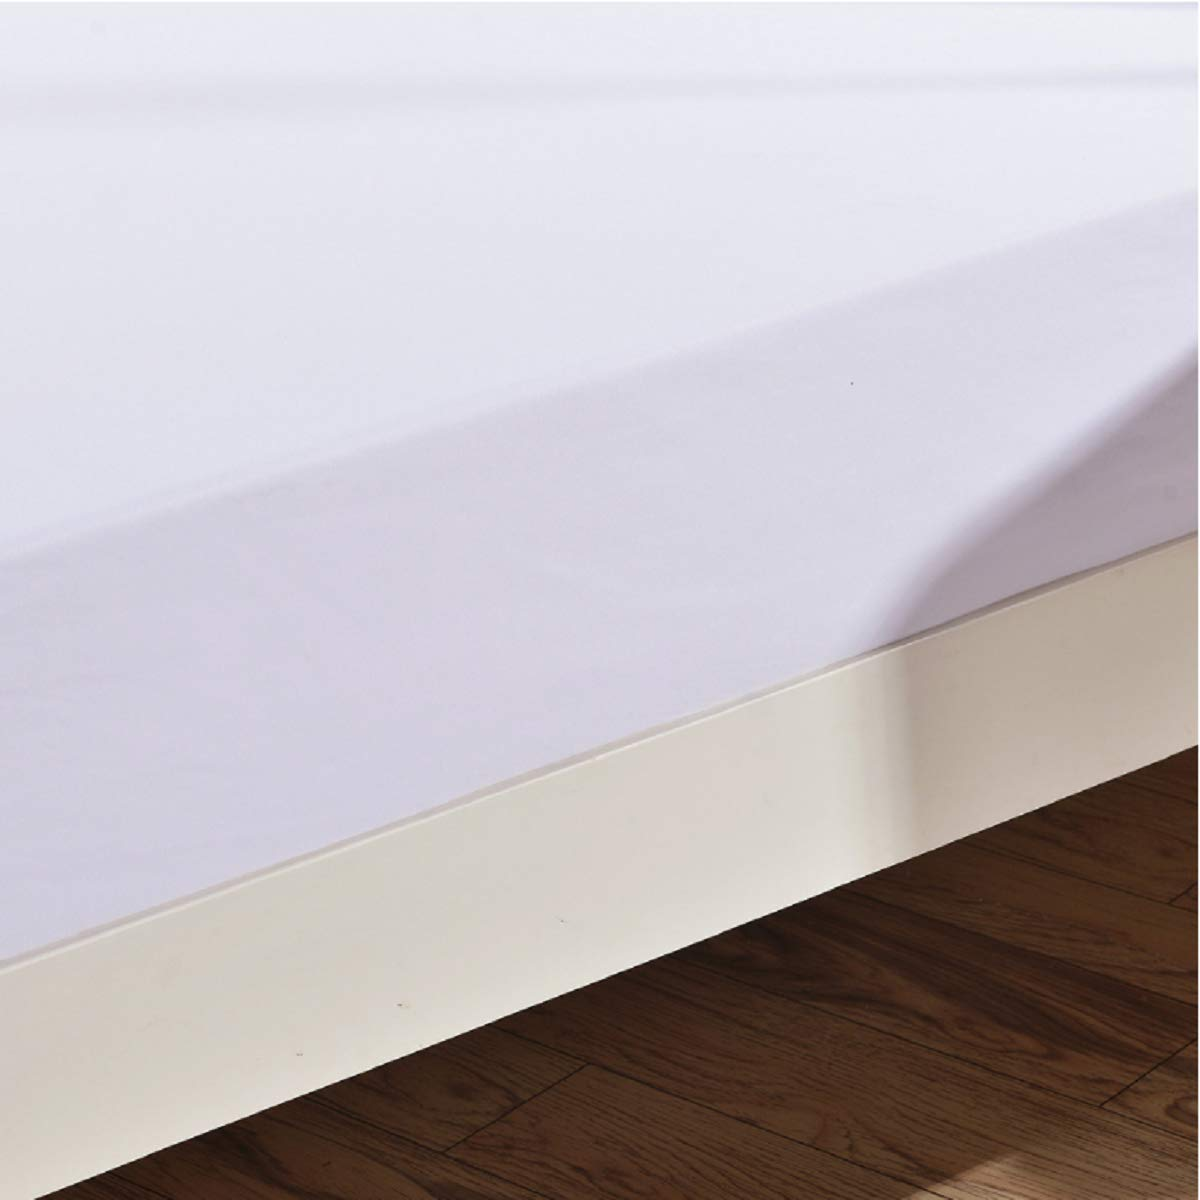 Black Sue/&Joe King Sheets Microfiber Deep Brushed Hypoallergenic Wrinkle Fade Resistant Fitted Sheet Only